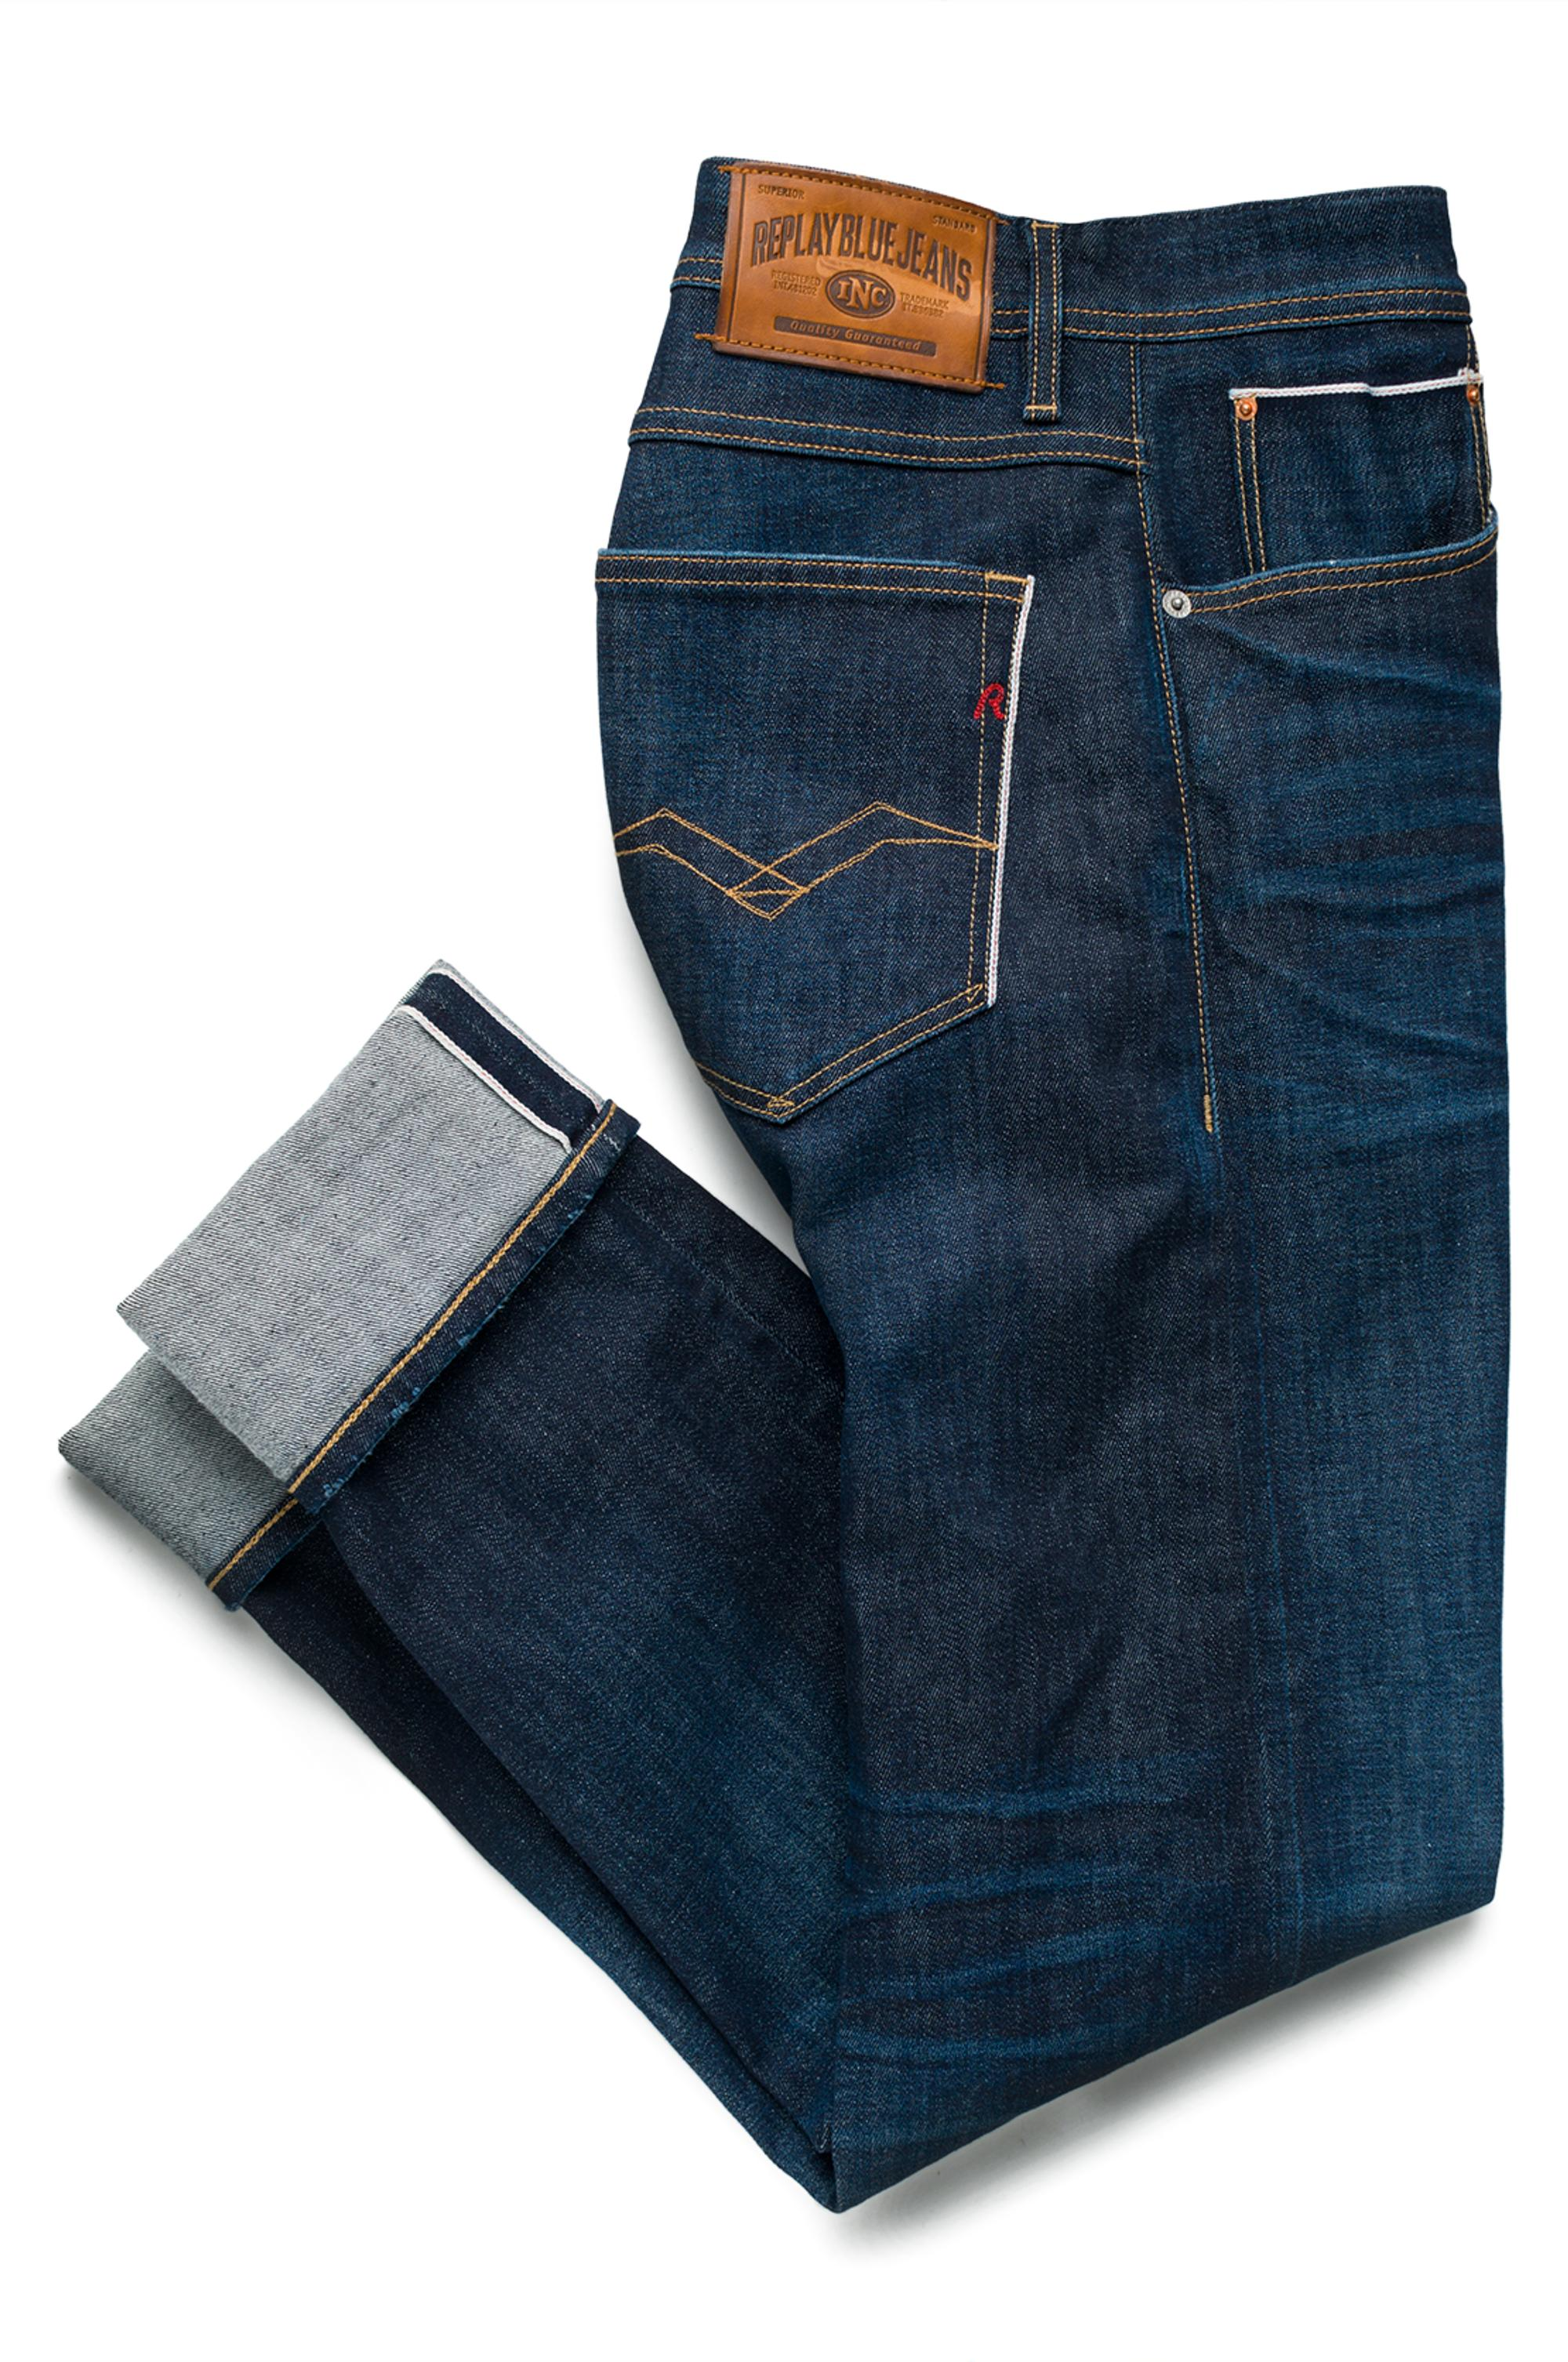 67b001d7 Replay Jeans RONAS slim selvedge jeans at £85 | love the brands